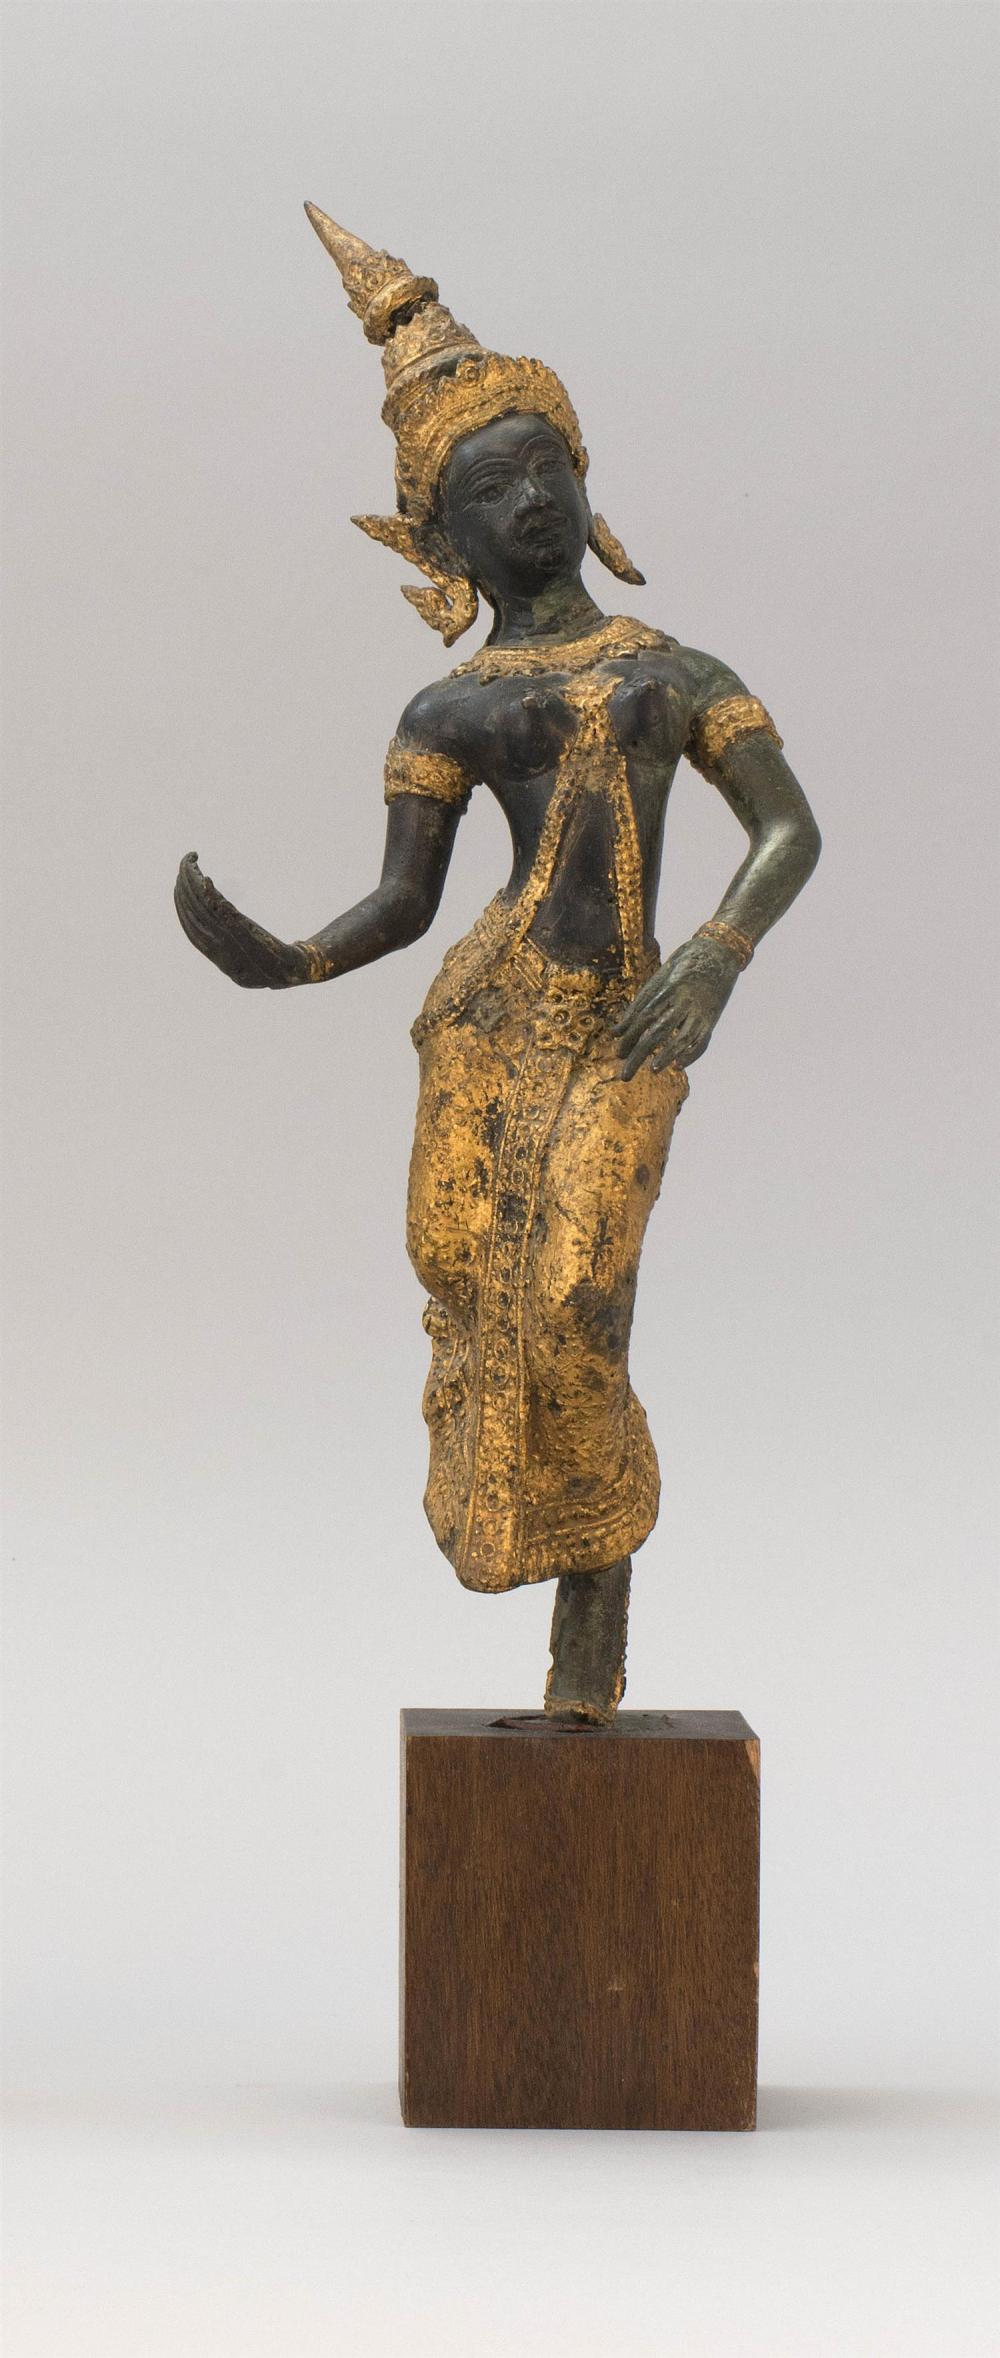 "THAI GILT-BRONZE FIGURE OF A DANCER Wearing a pointed headdress and flowing skirt. Height 13.5"". Wood stand."